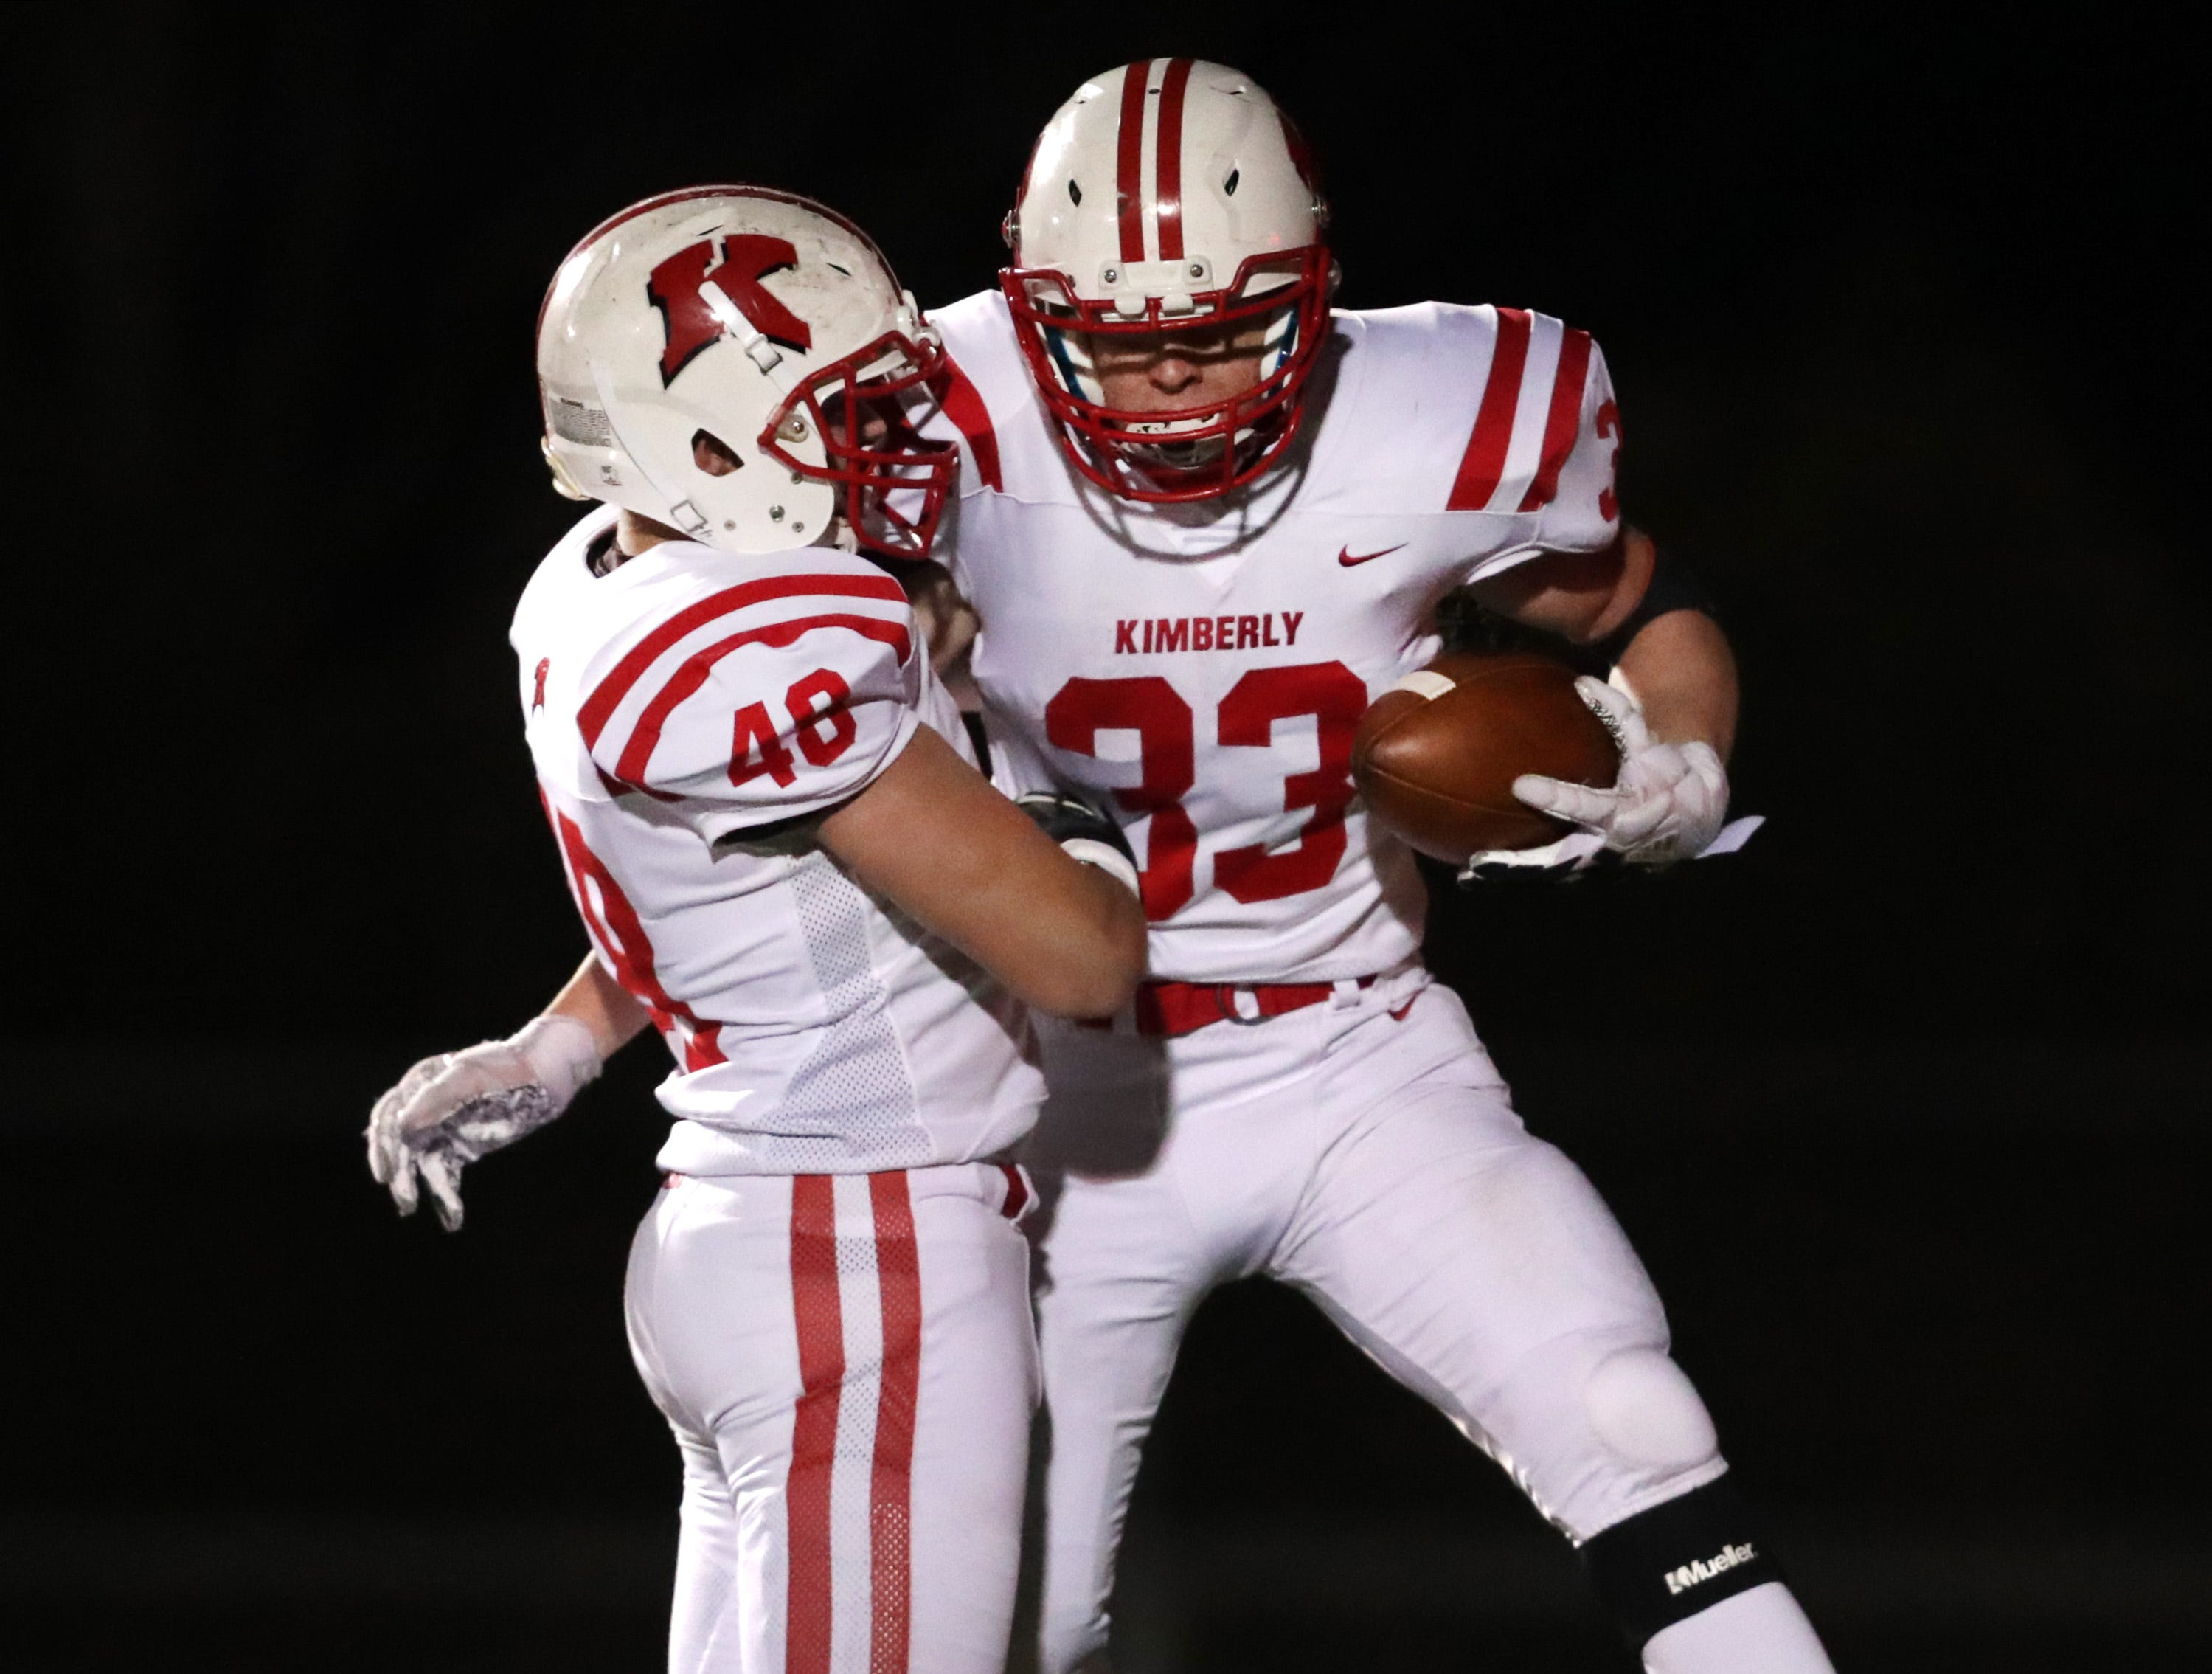 Kimberly High School's #33 Caleb Frazer and #48 Will Hammen celebrate a fourth quarter touchdown against Bayport High School during their WIAA Division 1 state quarterfinal football game on Friday, November 1, 2018, in Green Bay, Wis.  Kimberly defeated Bayport 38 to 20.